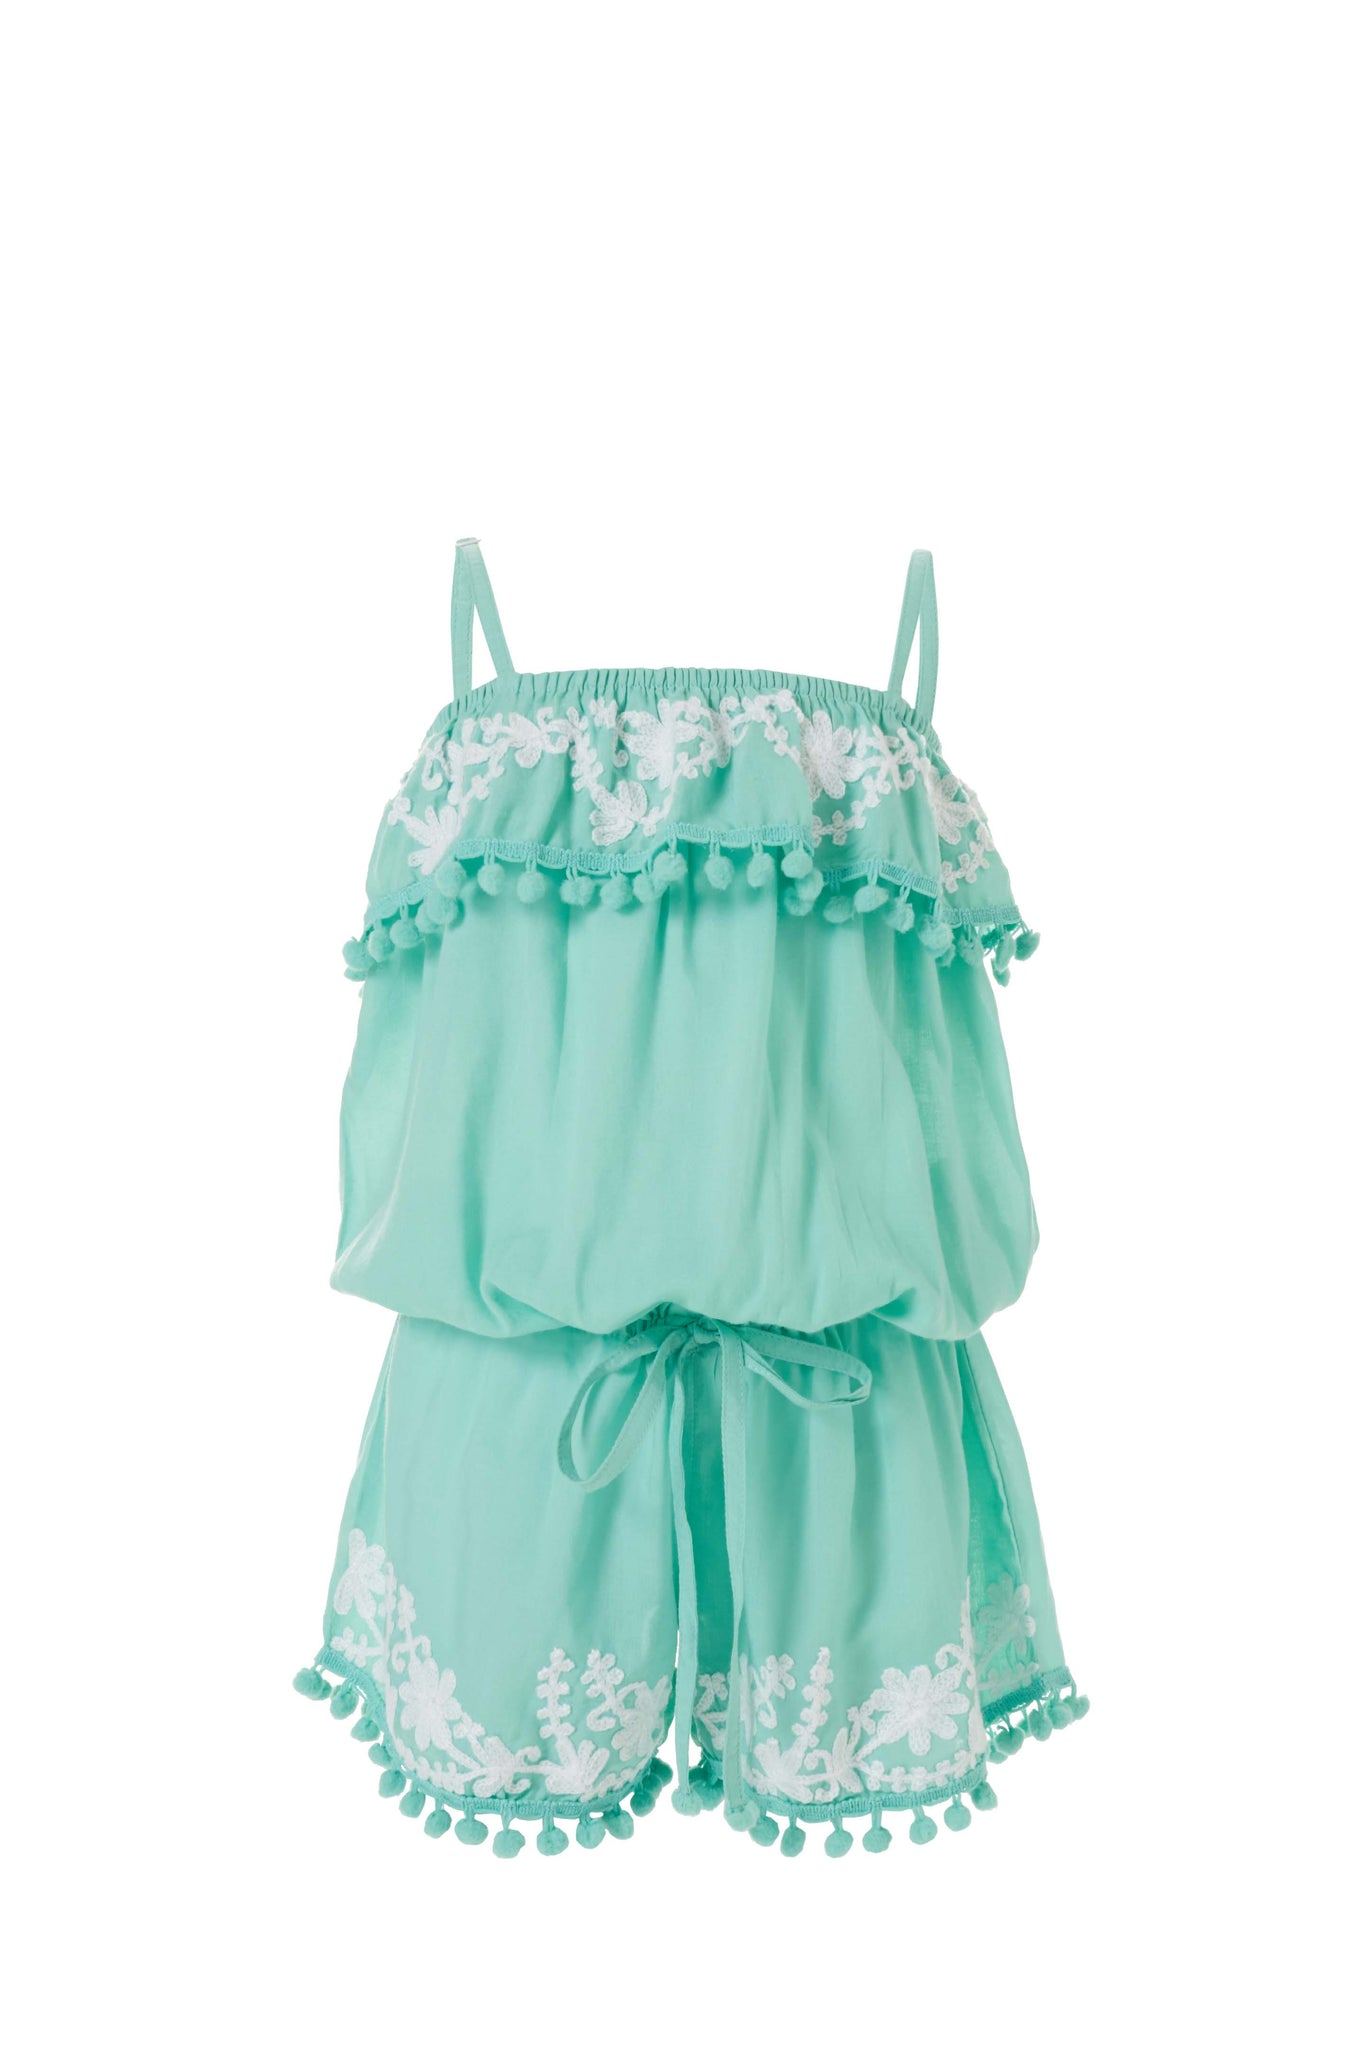 Baby Eisha Mint/White Embroidered Romper